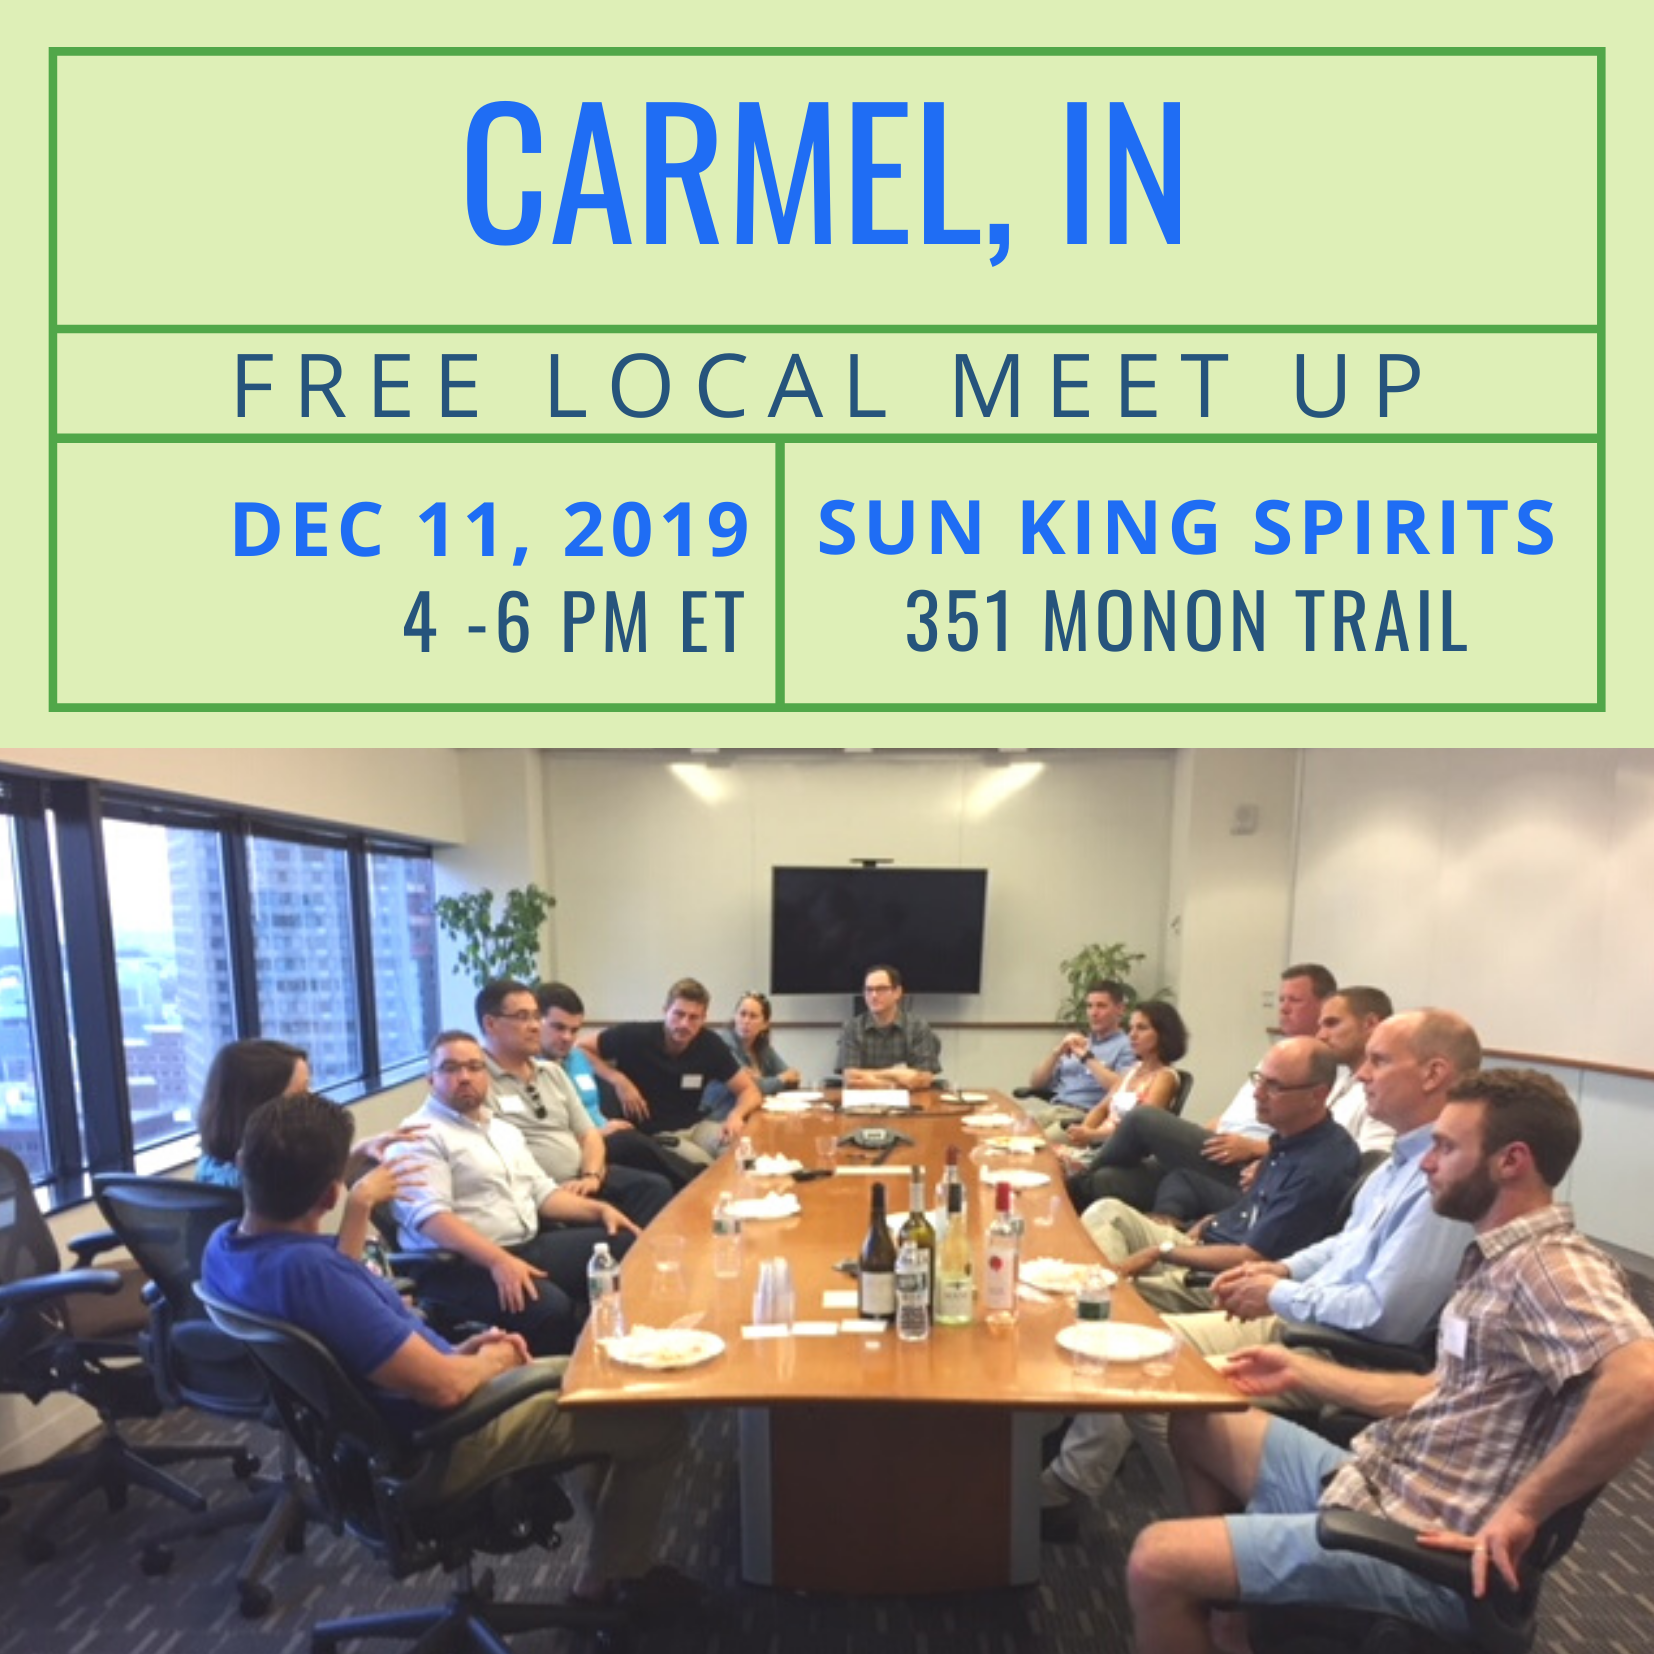 FREE Local Meet Up: Carmel, IN on December 11